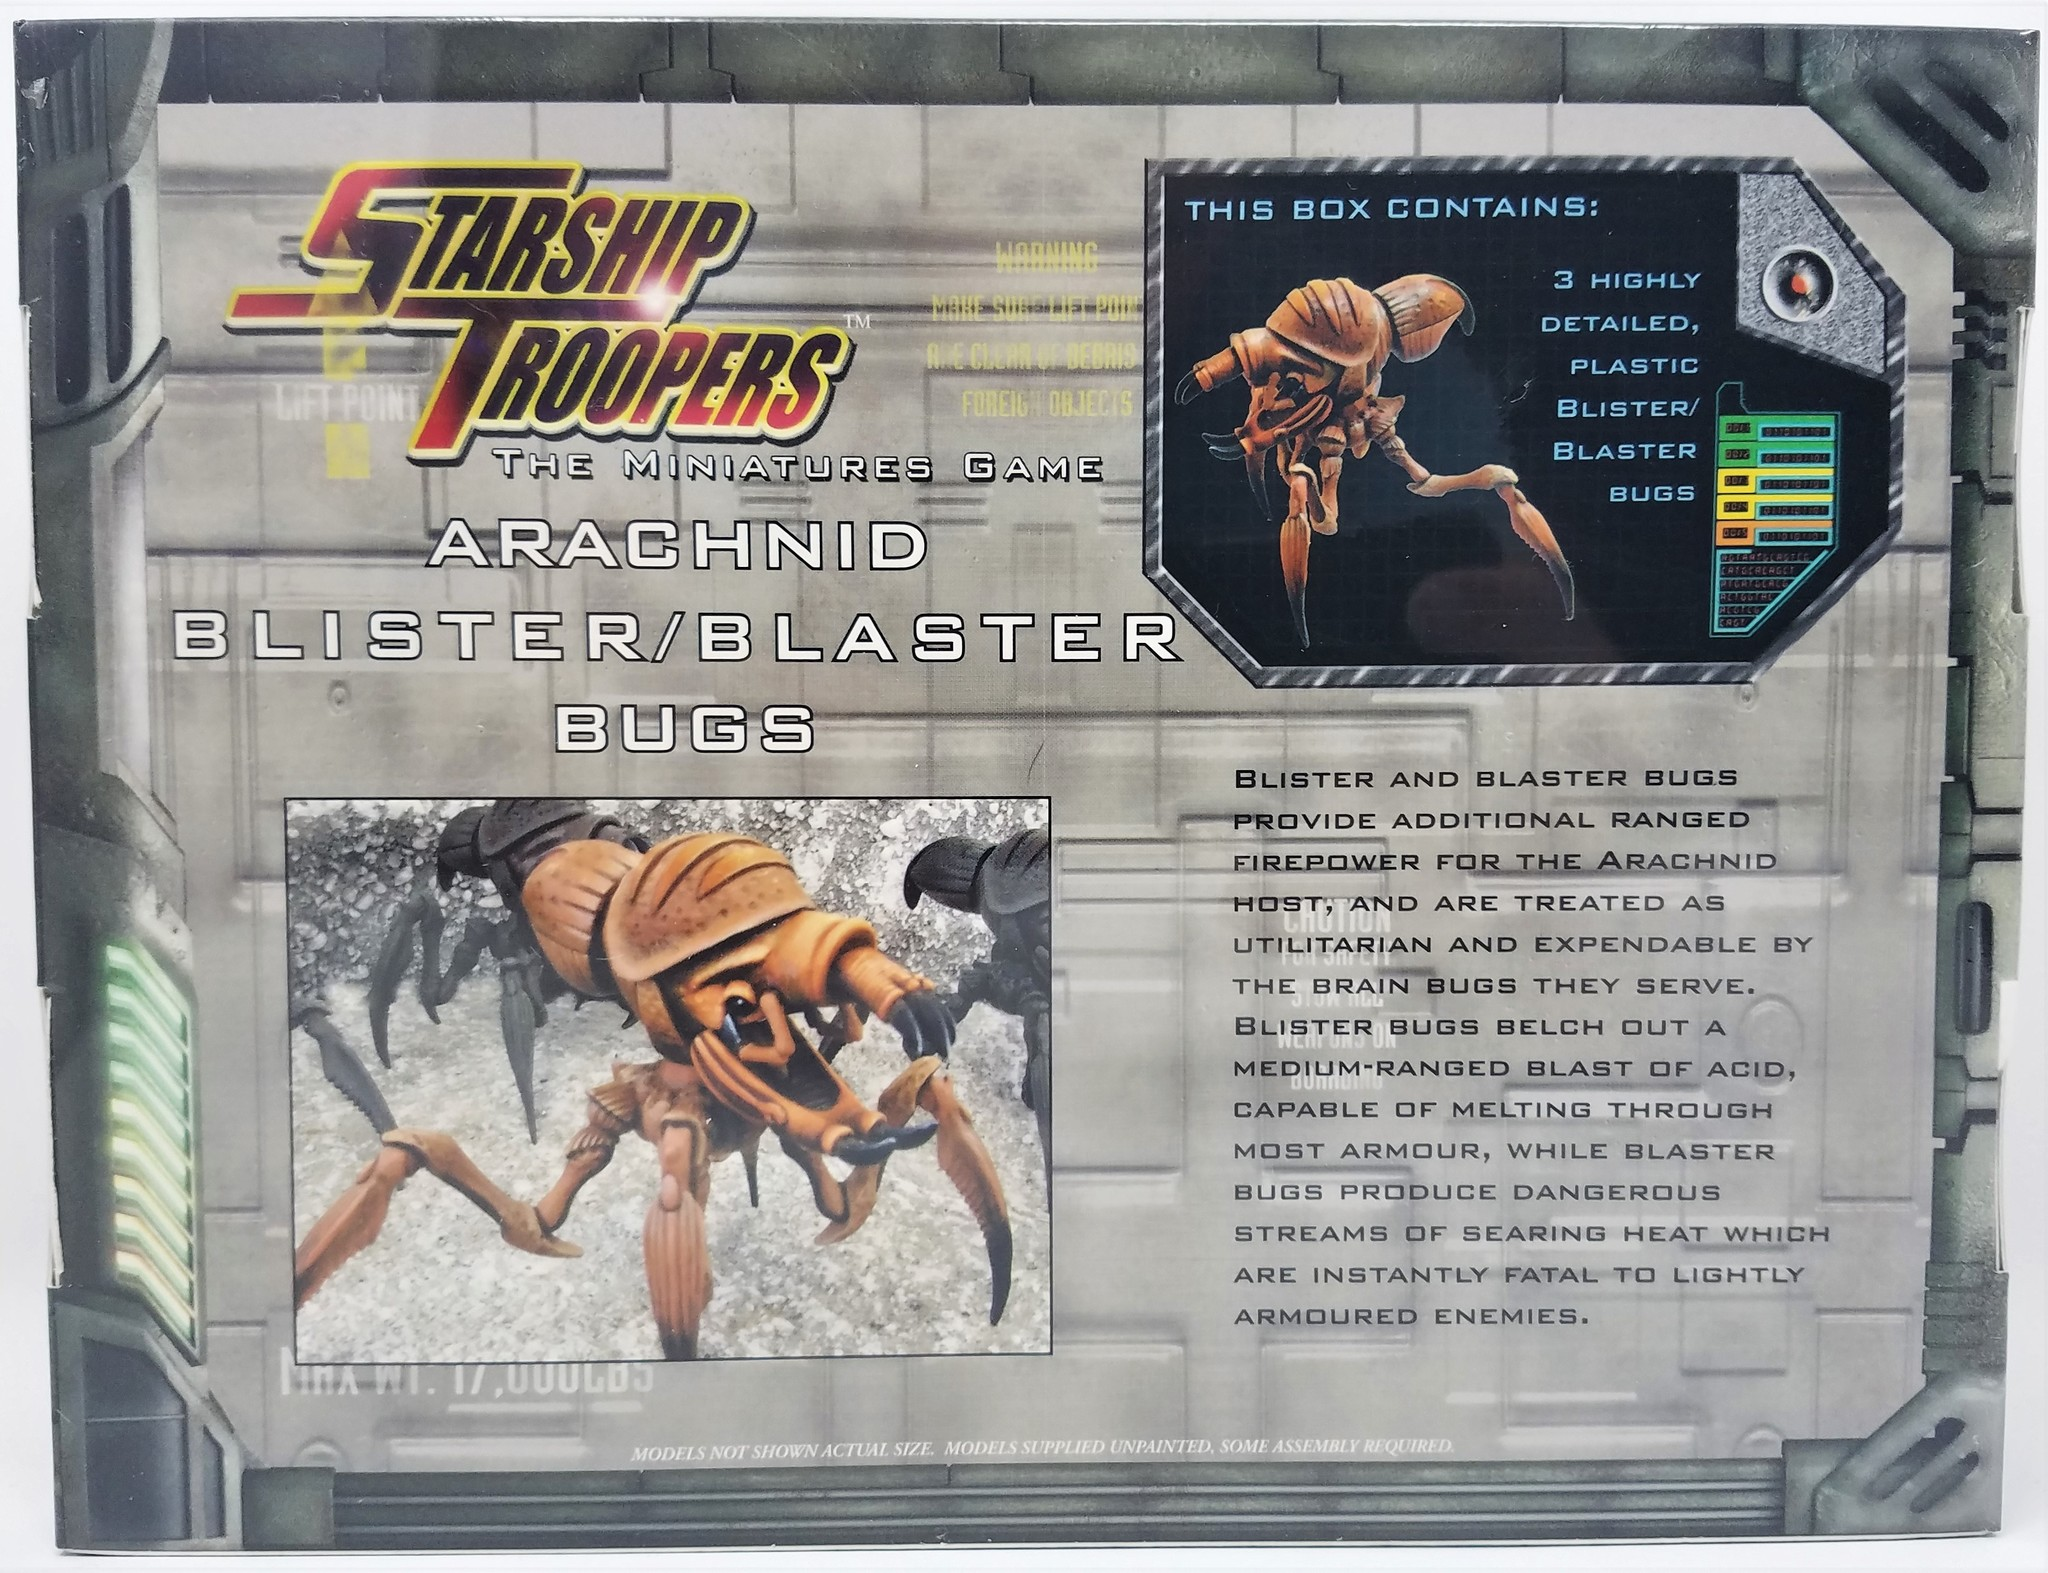 Starship Troopers Miniatures: Blister/Blaster Bugs